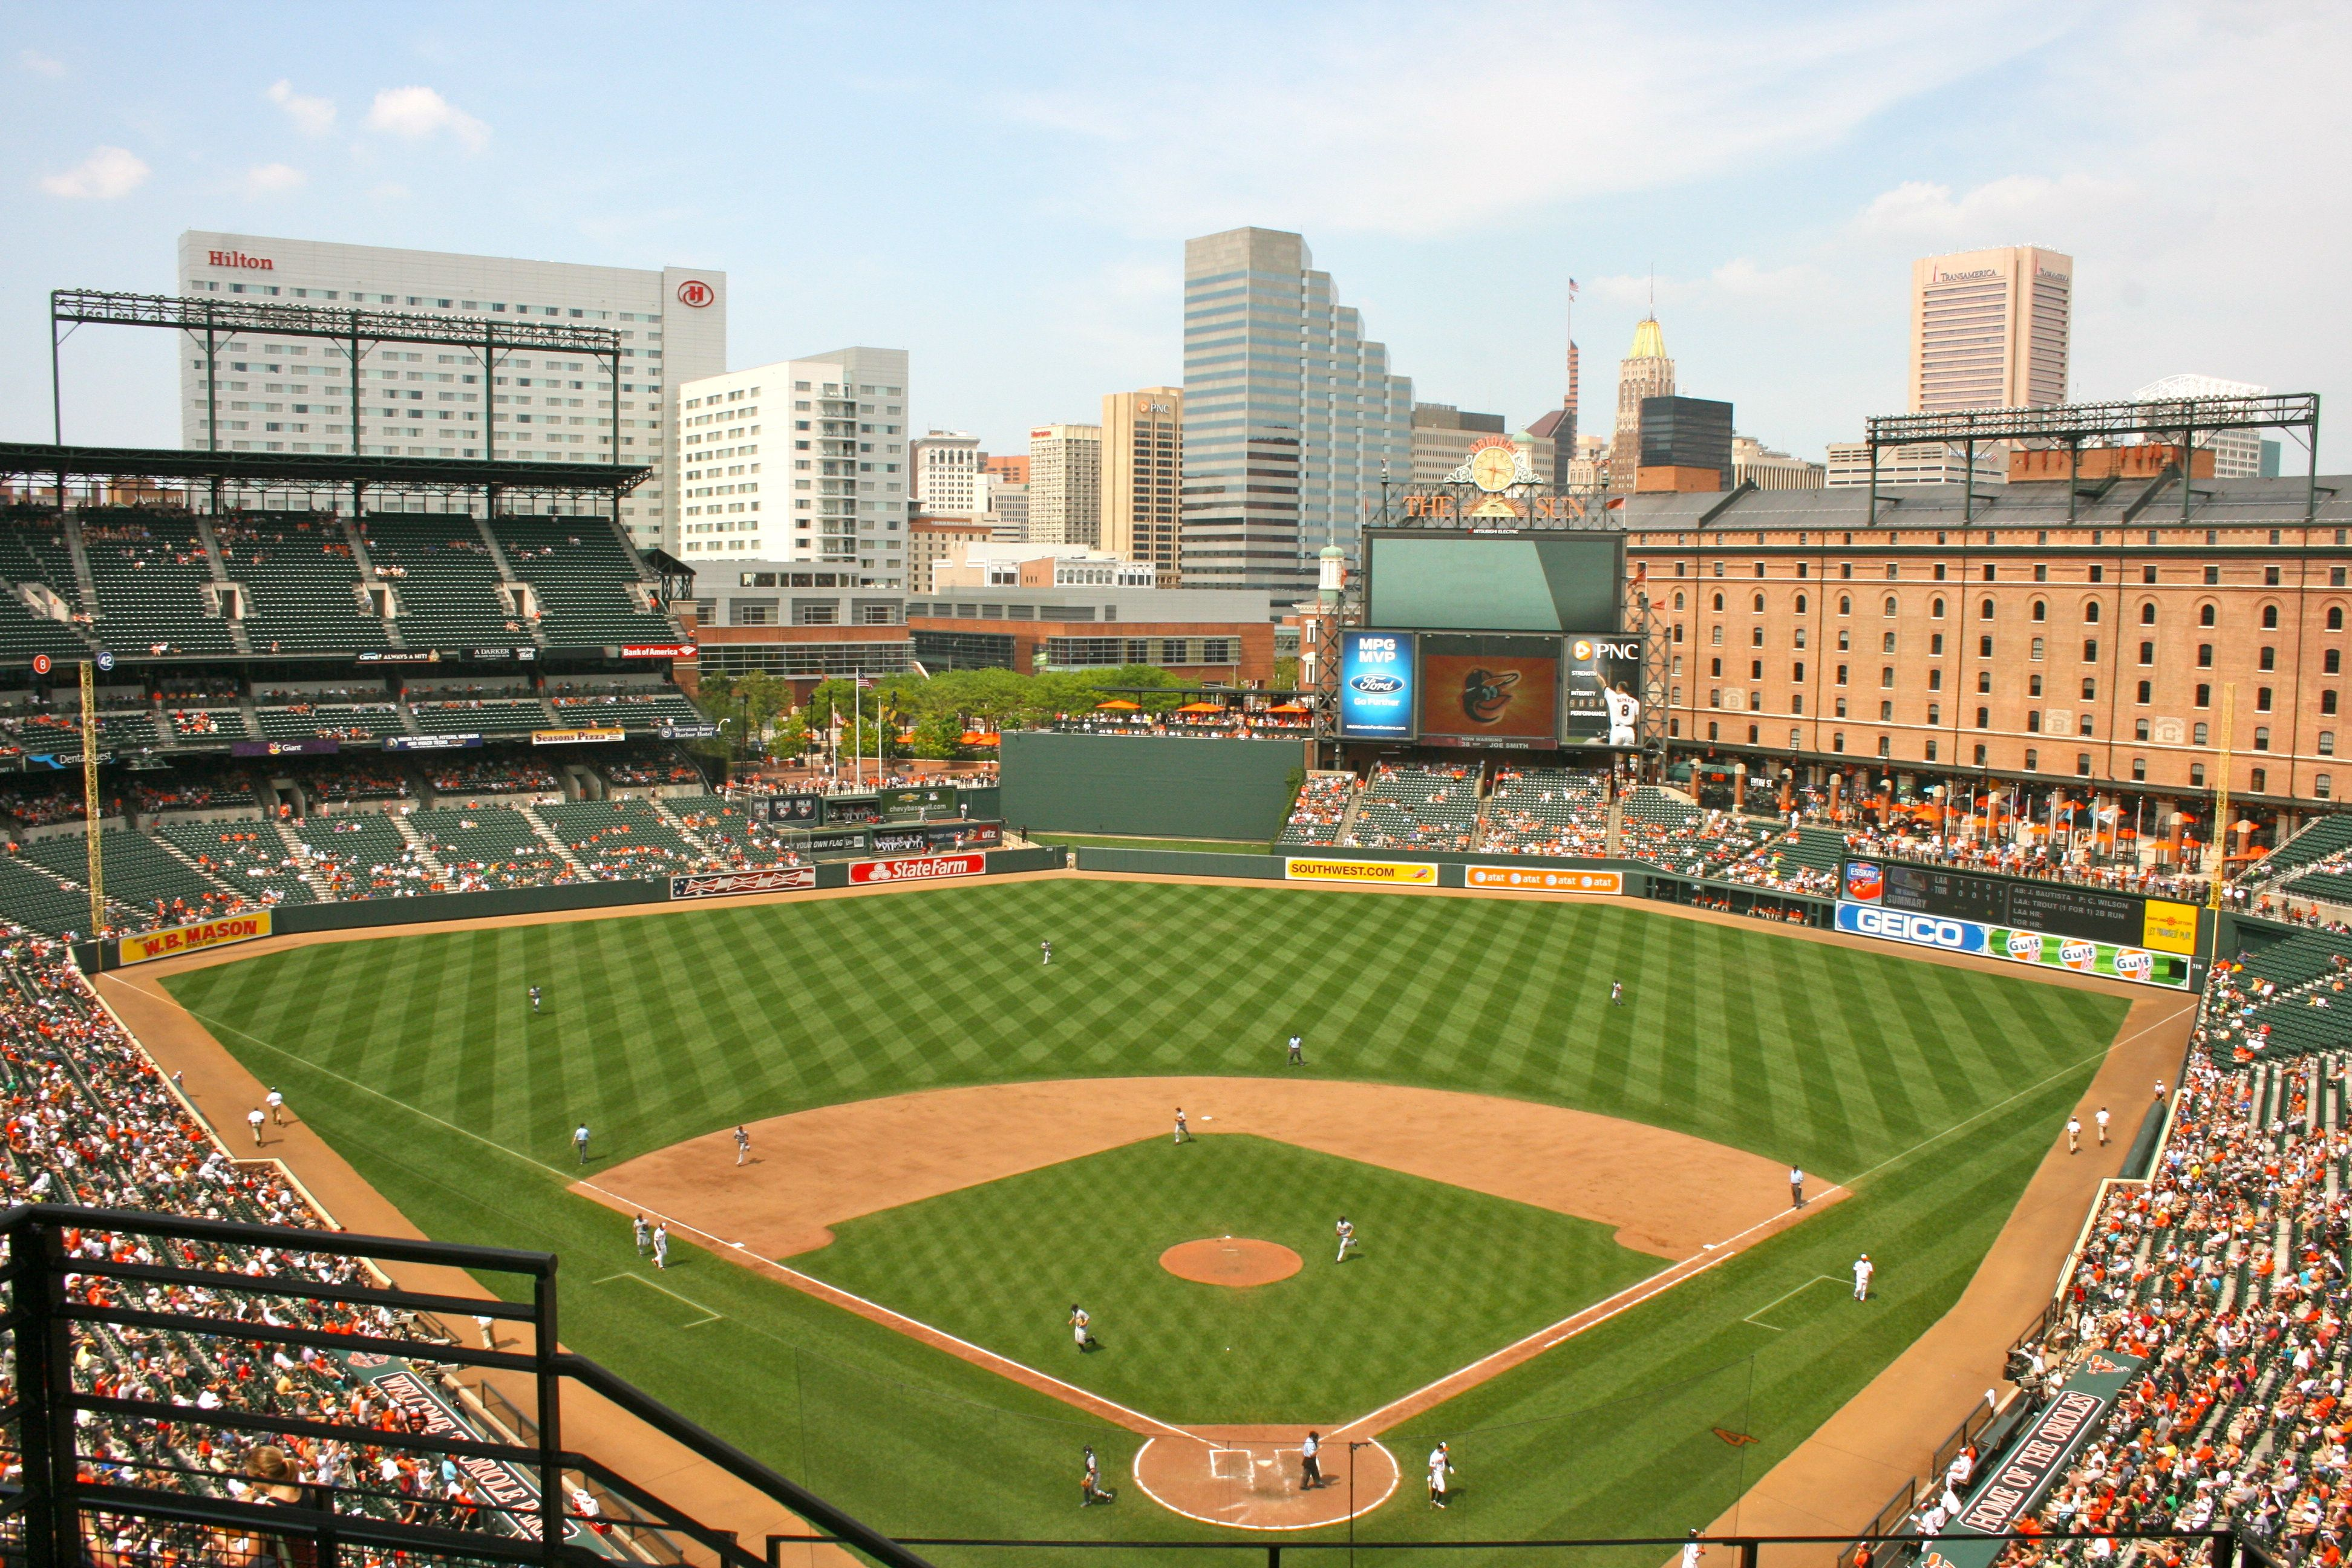 Orioles Camden Yard Baltimore Orioles Stadium Camden Yards Orioles Game